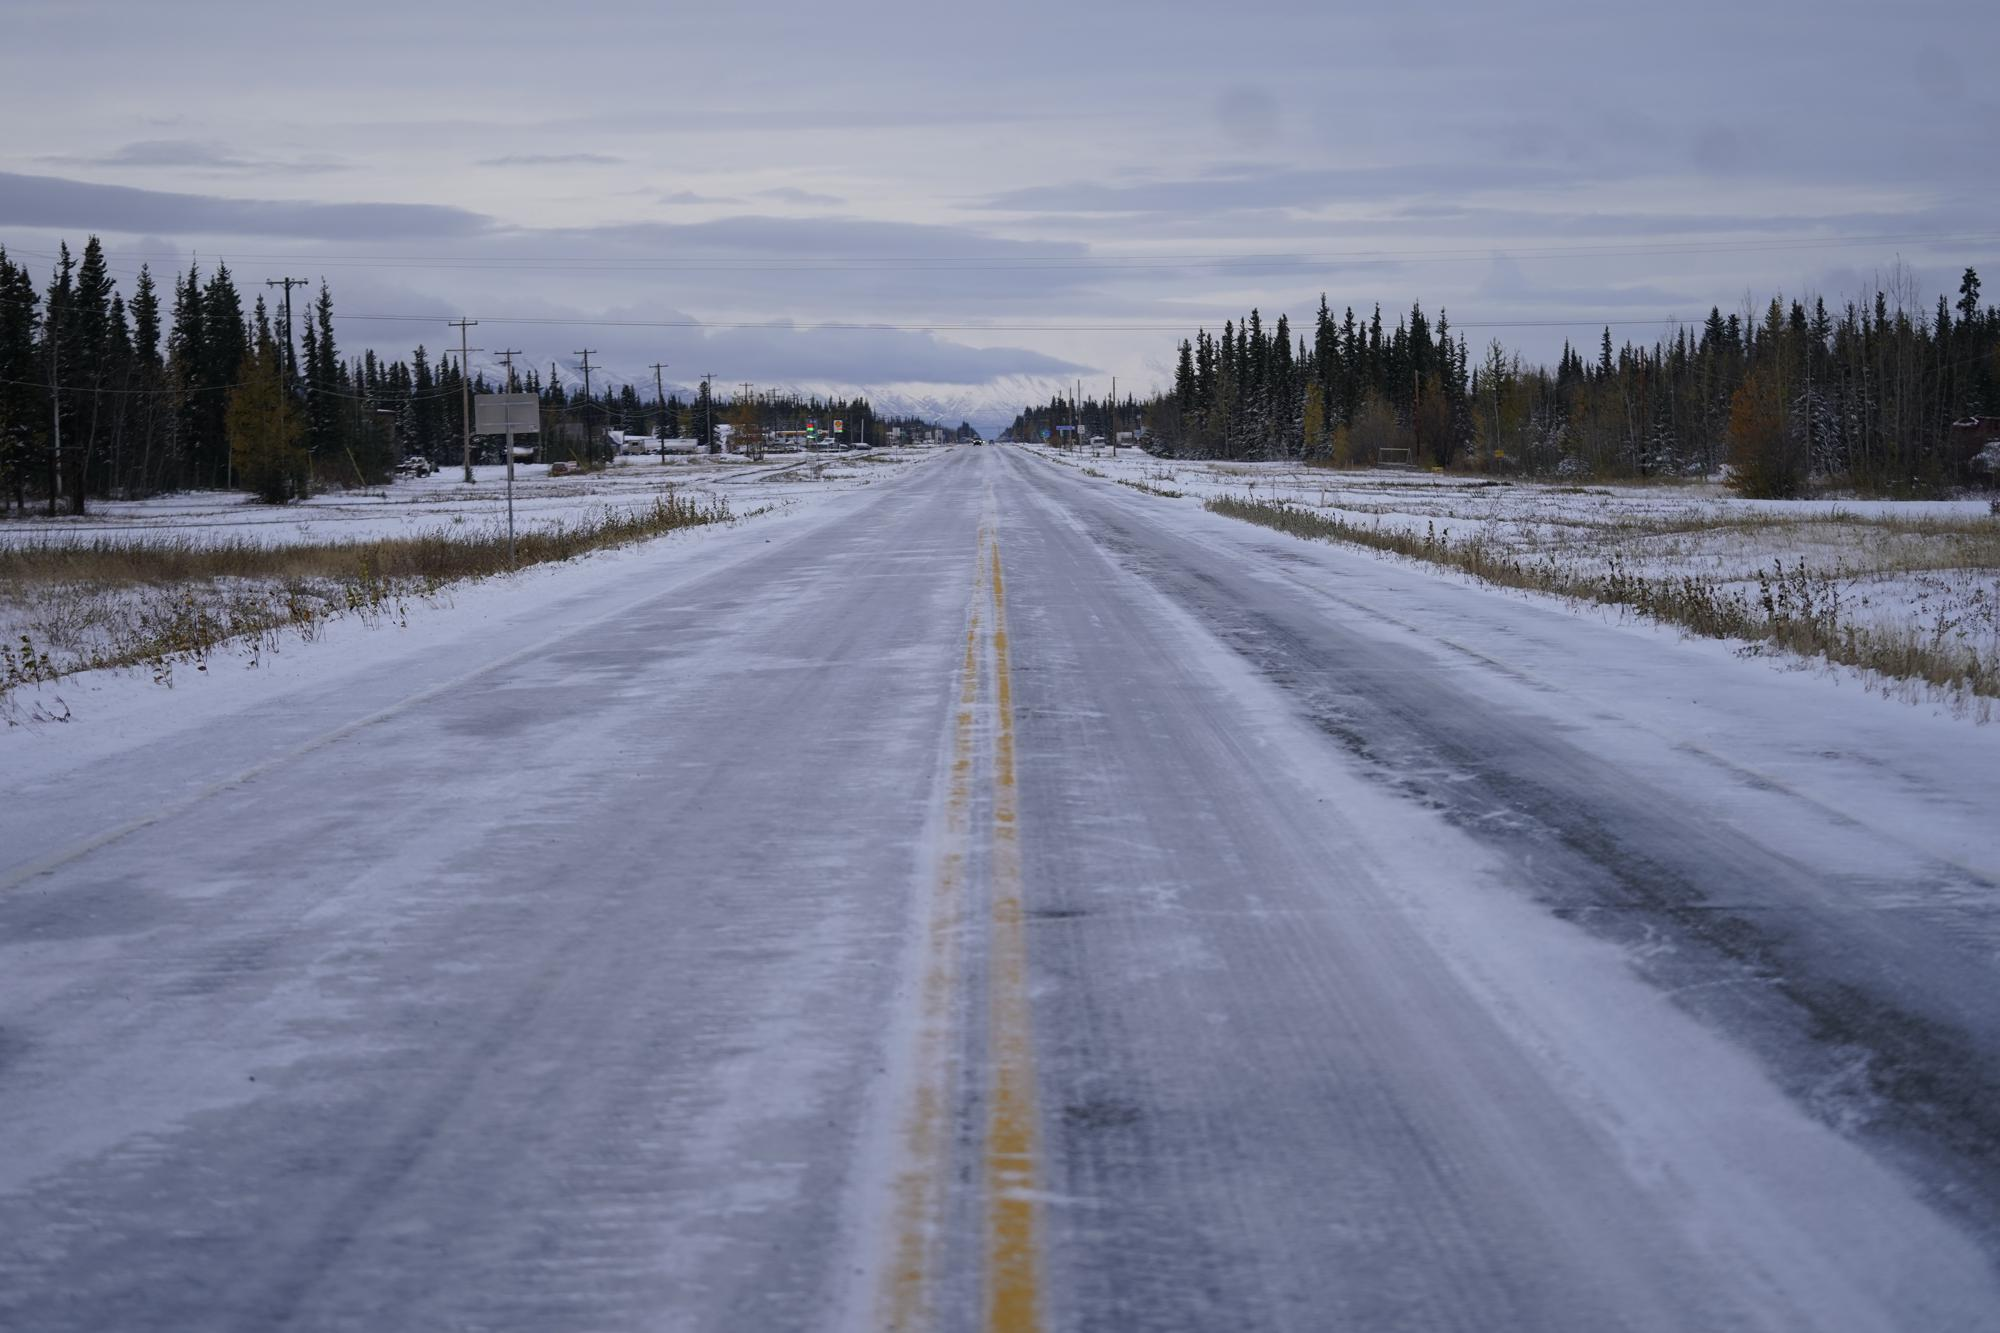 Ice and snow covers the Alaska Highway Wednesday, Sept. 22, 2021, in Tok, Alaska. The state is experiencing one of the sharpest rises in COVID-19 cases in the country, coupled with a limited statewide healthcare system that is almost entirely reliant on Anchorage hospitals. (AP Photo/Rick Bowmer)